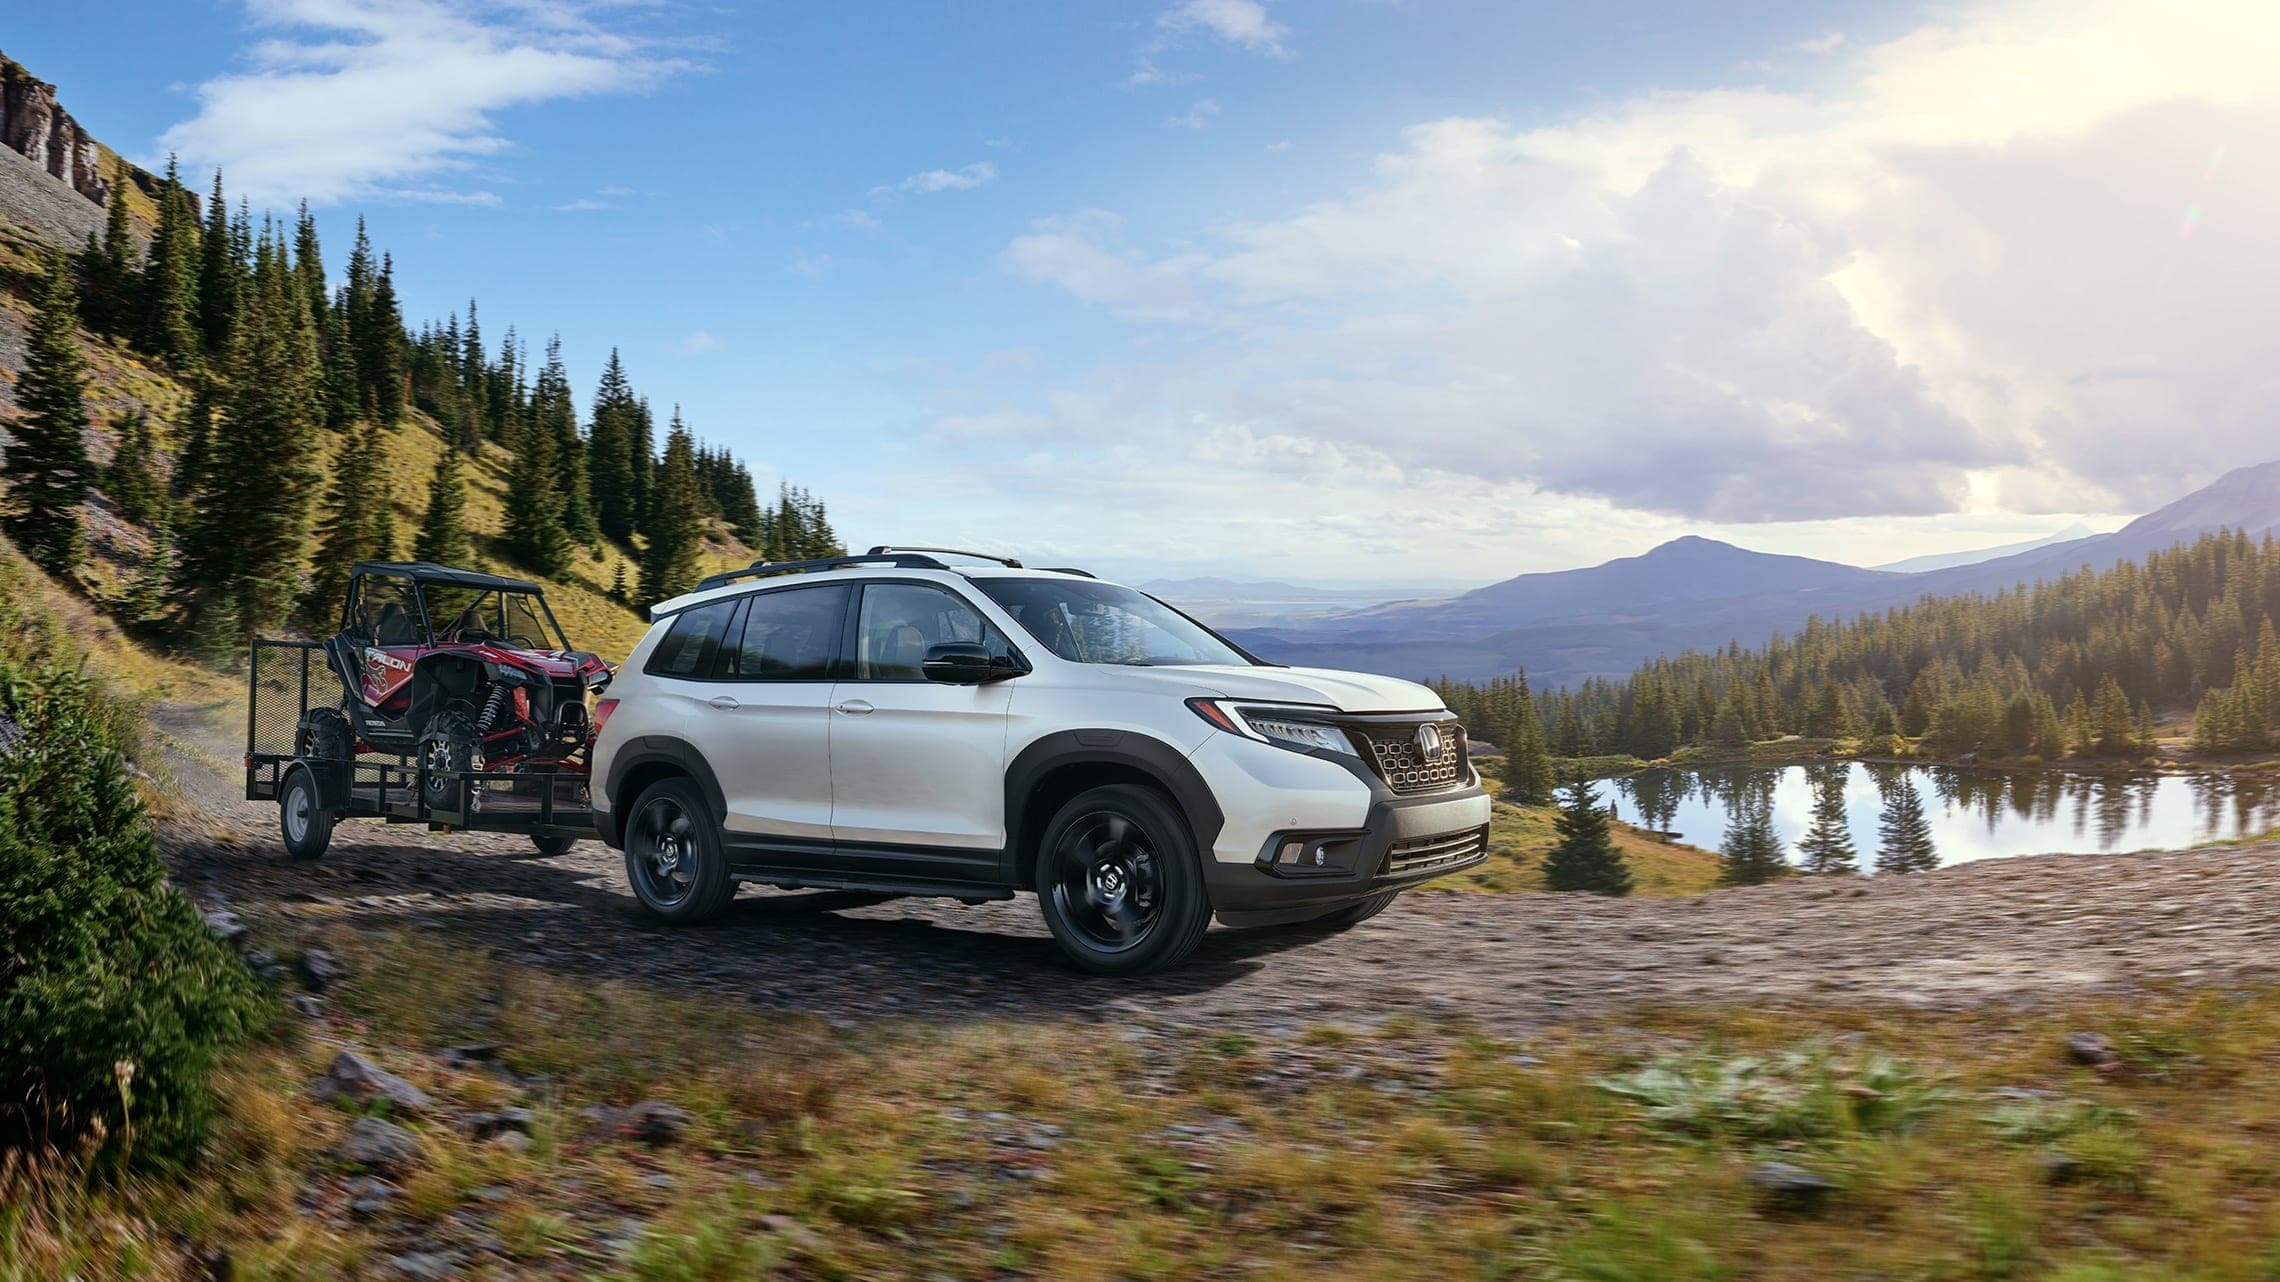 Honda Passport can tow up to 5,000 pounds!